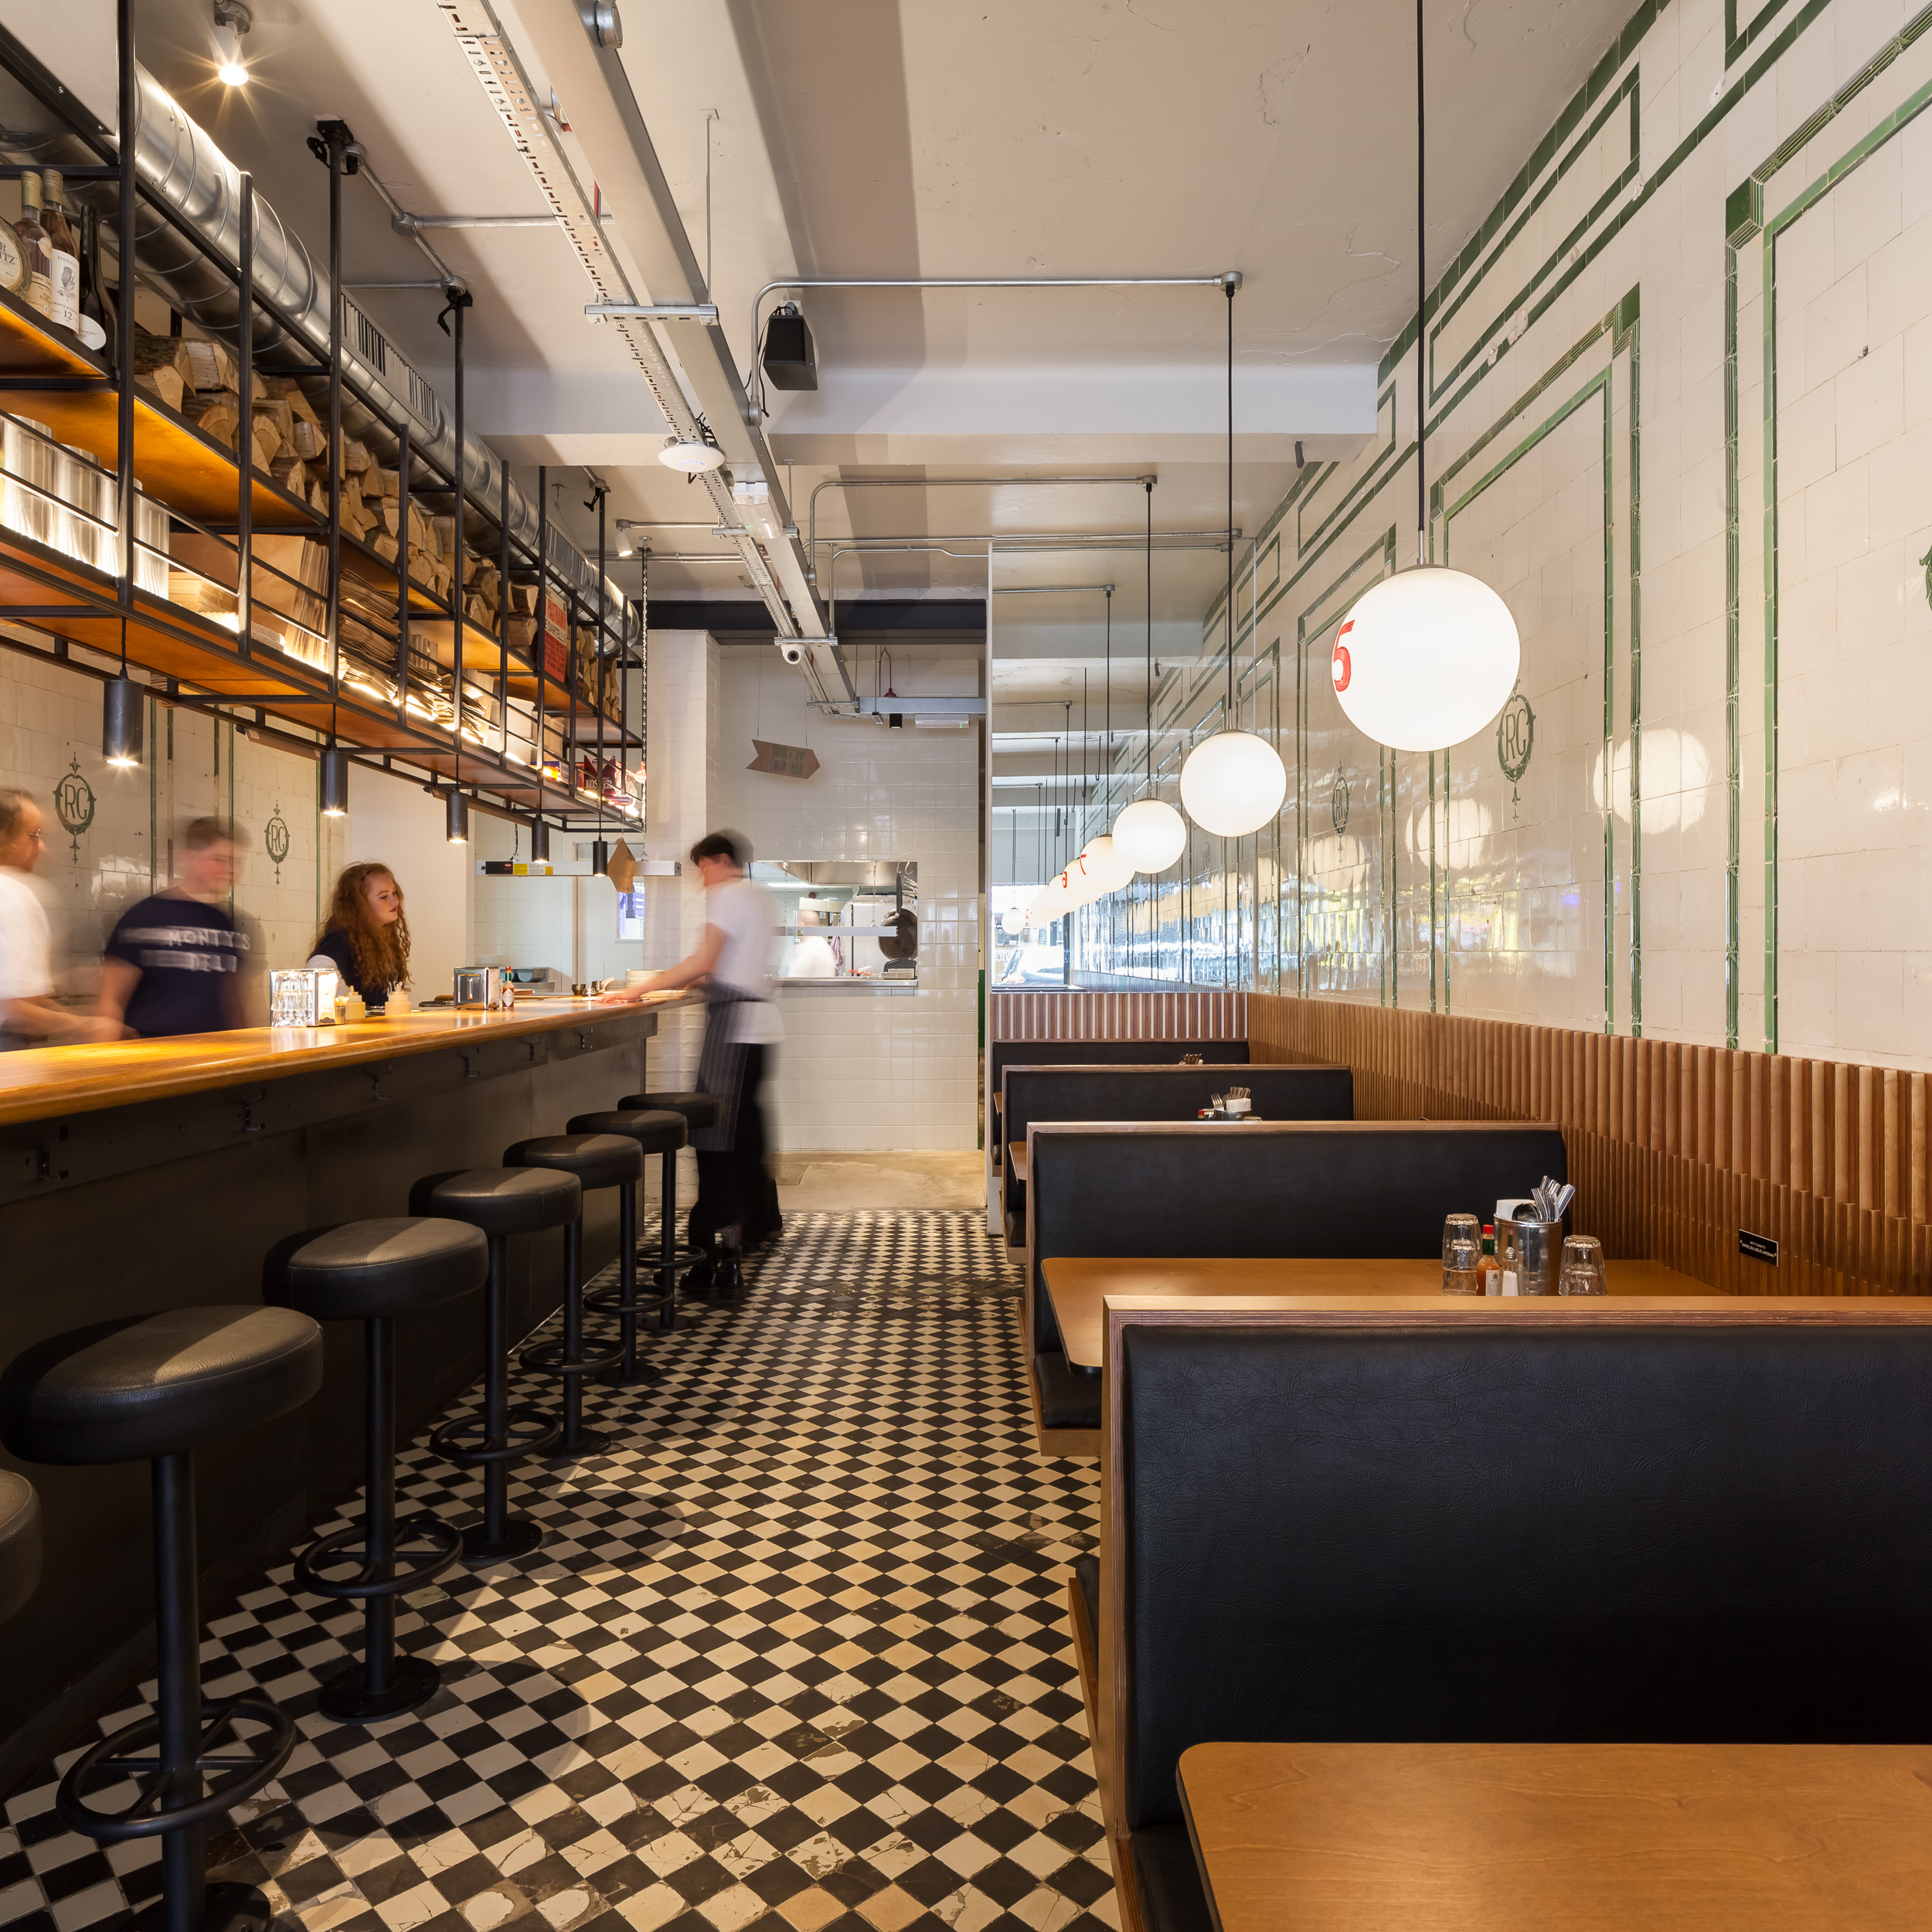 Pano_0433_0439-Edit - MATA_Architects_Montys_Deli.jpg